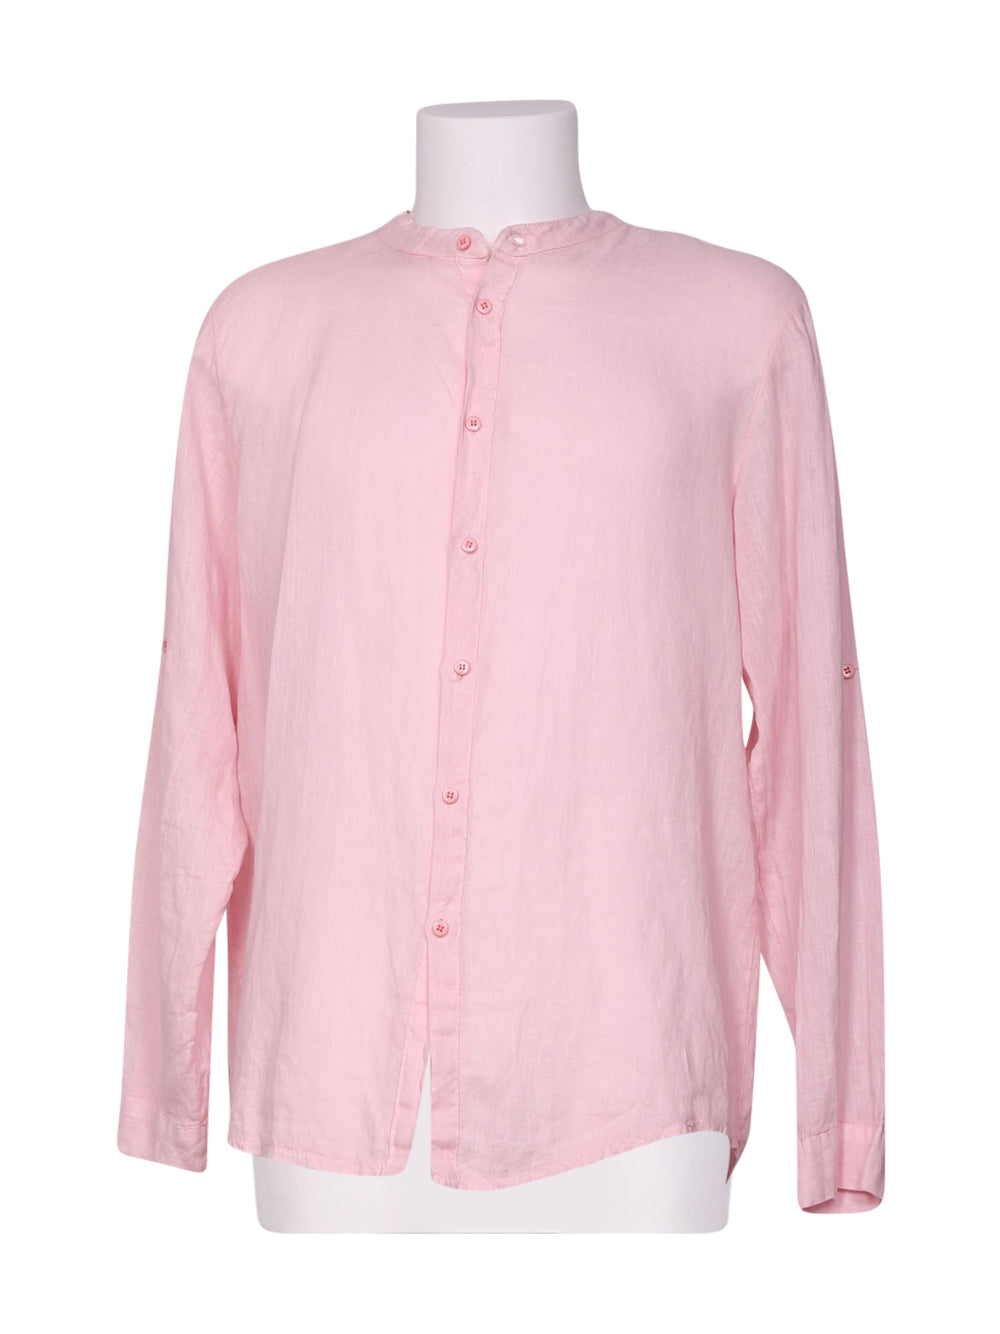 Front photo of Preloved focus Pink Man's shirt - size 44/XXL